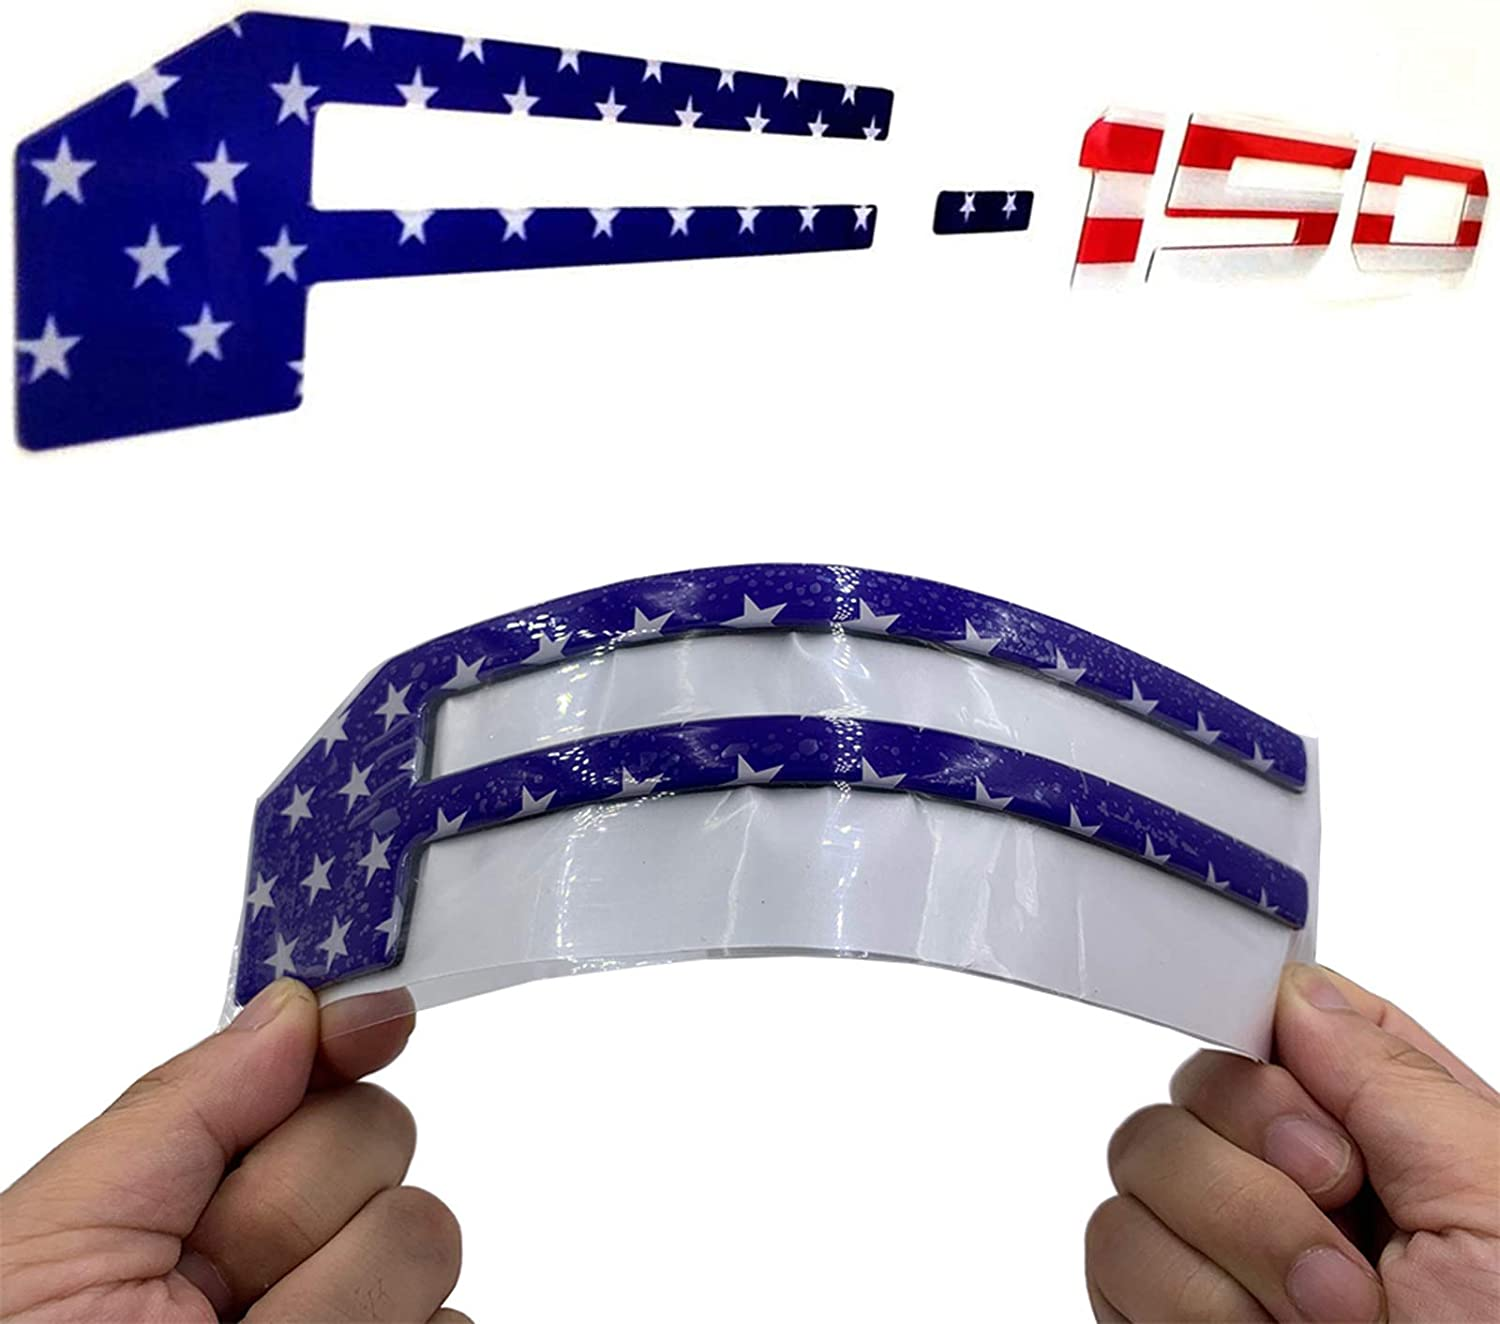 American Flag 3.2 mm Thickness 3D Raised Tailgate Insert Letters Decals Stickers for 2018 2019 2020 F150 with Strong Adhesive,Letters Are Not Emblems